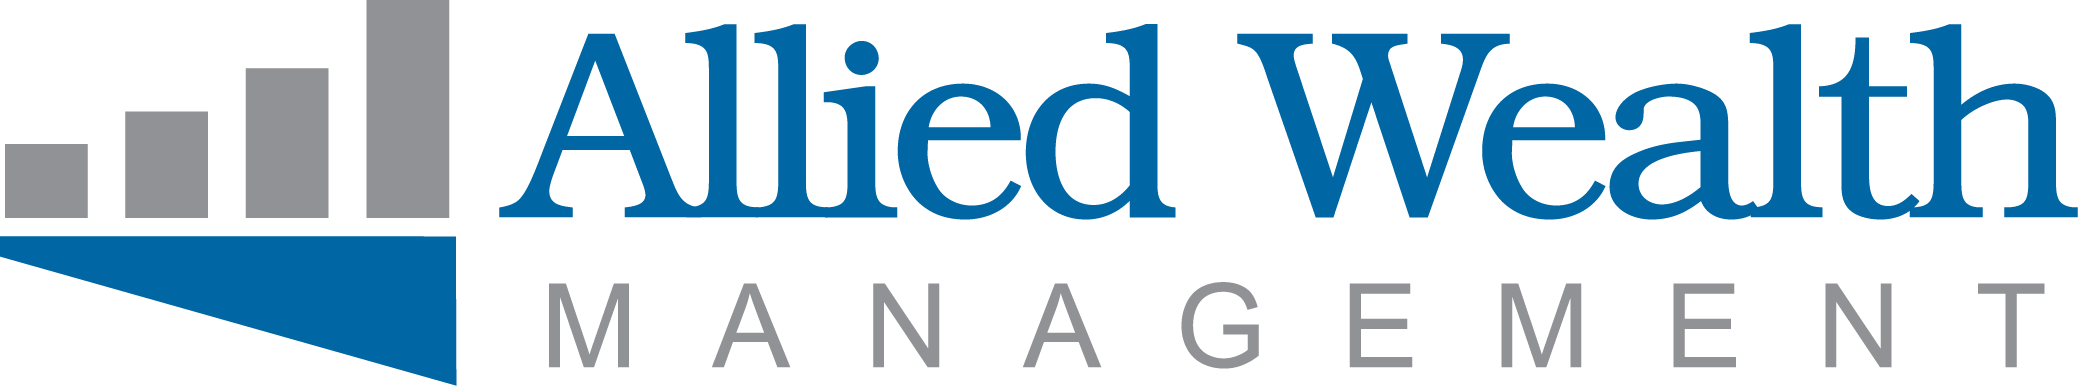 Allied Wealth Management Logo